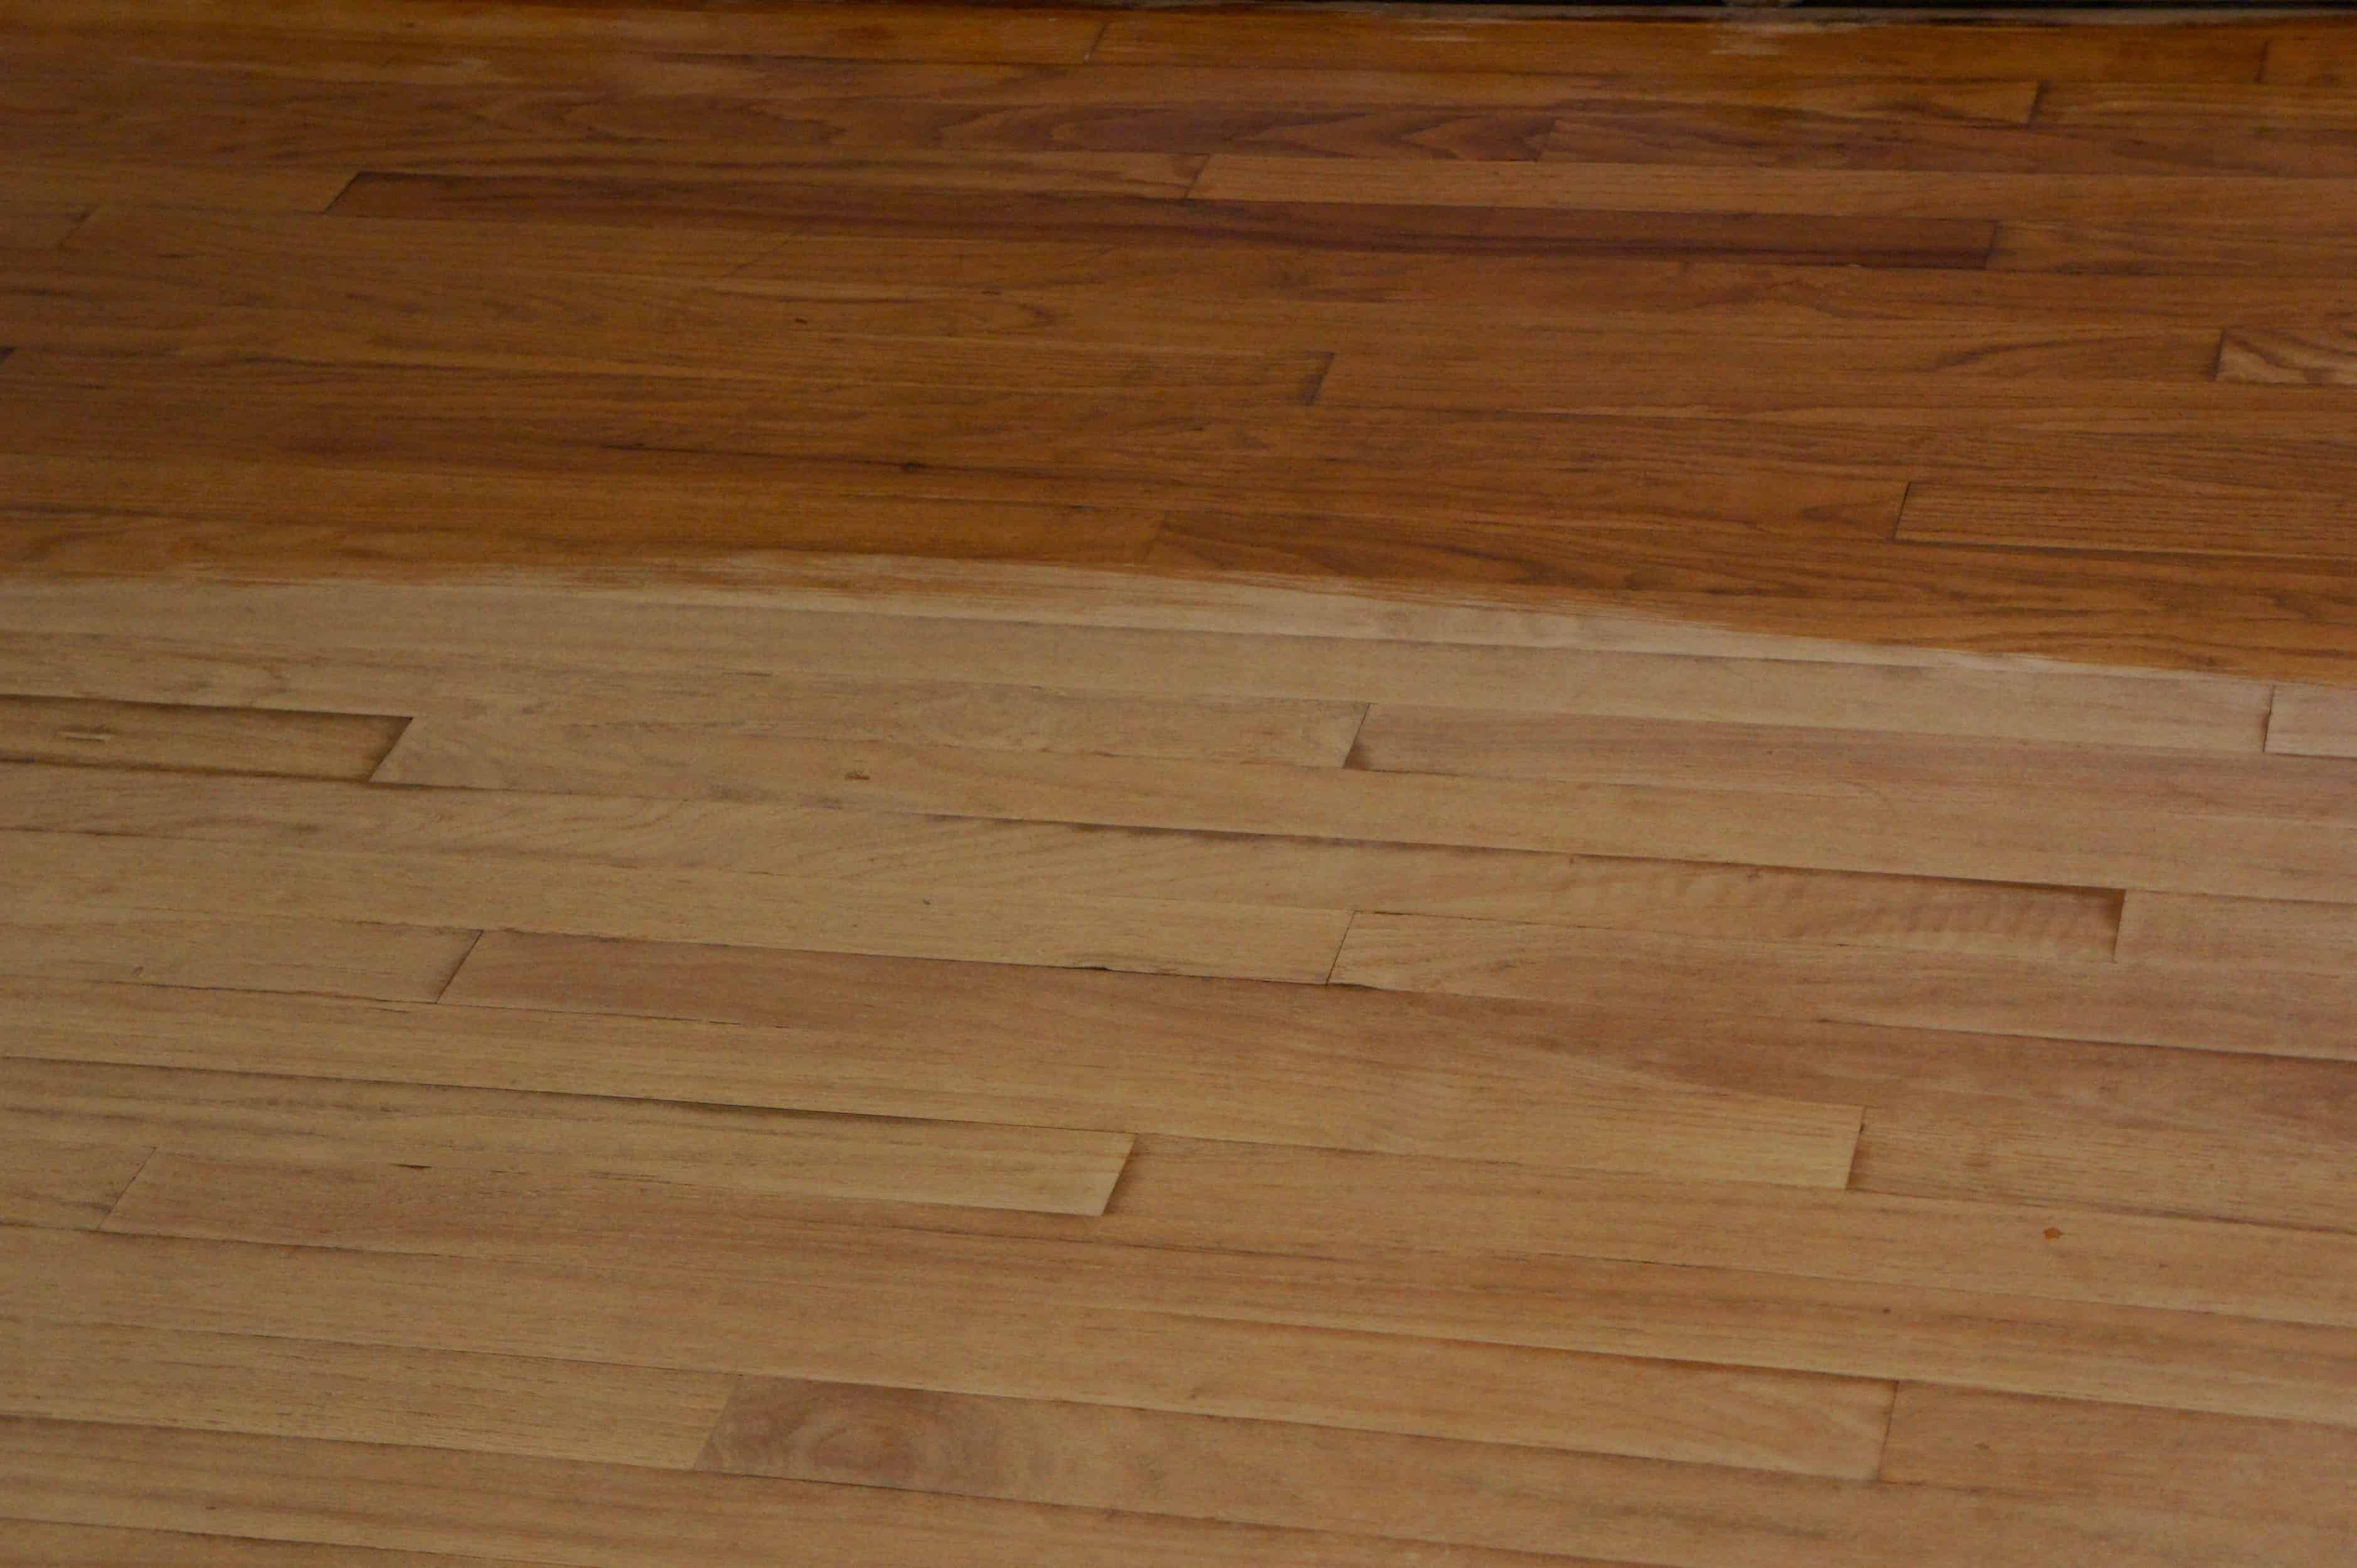 Early Finish Wear Is Your Hardwood Floor Wearing Out Prematurely